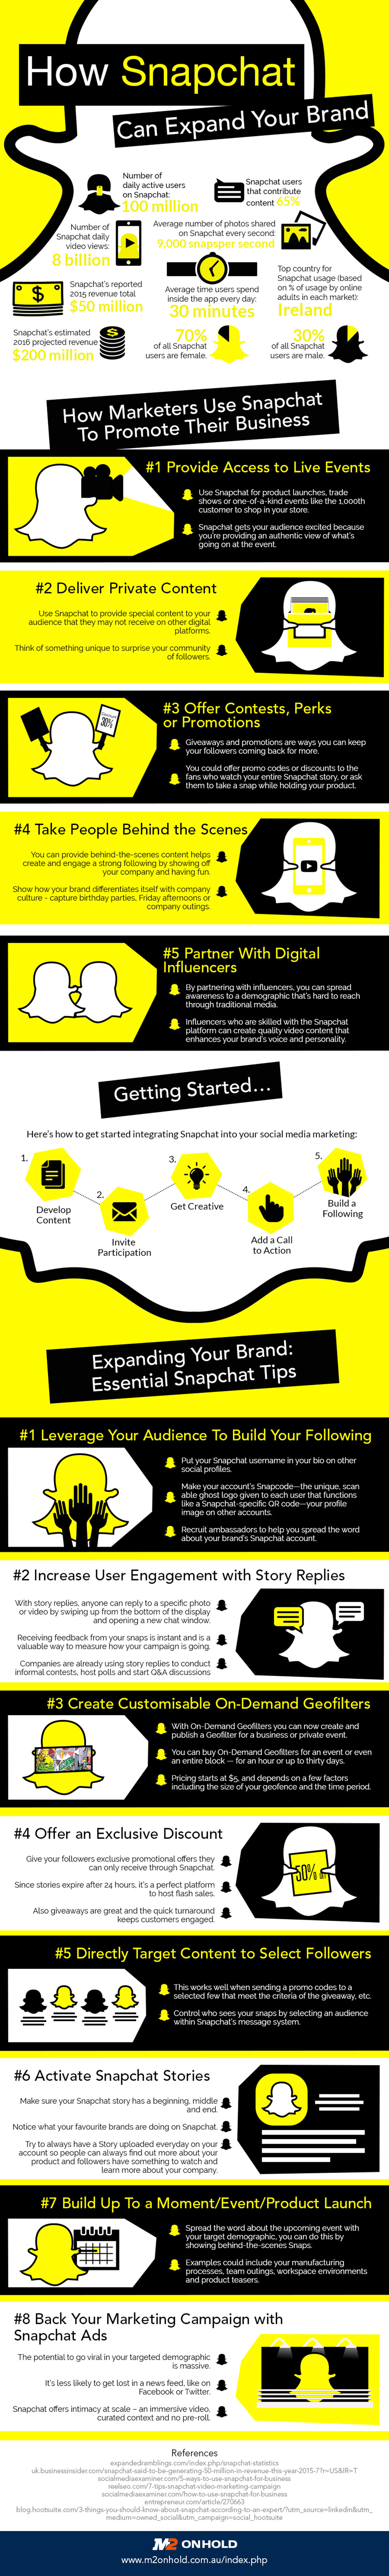 How Snapchat Can Expand Your Brand - Social Media Infographic